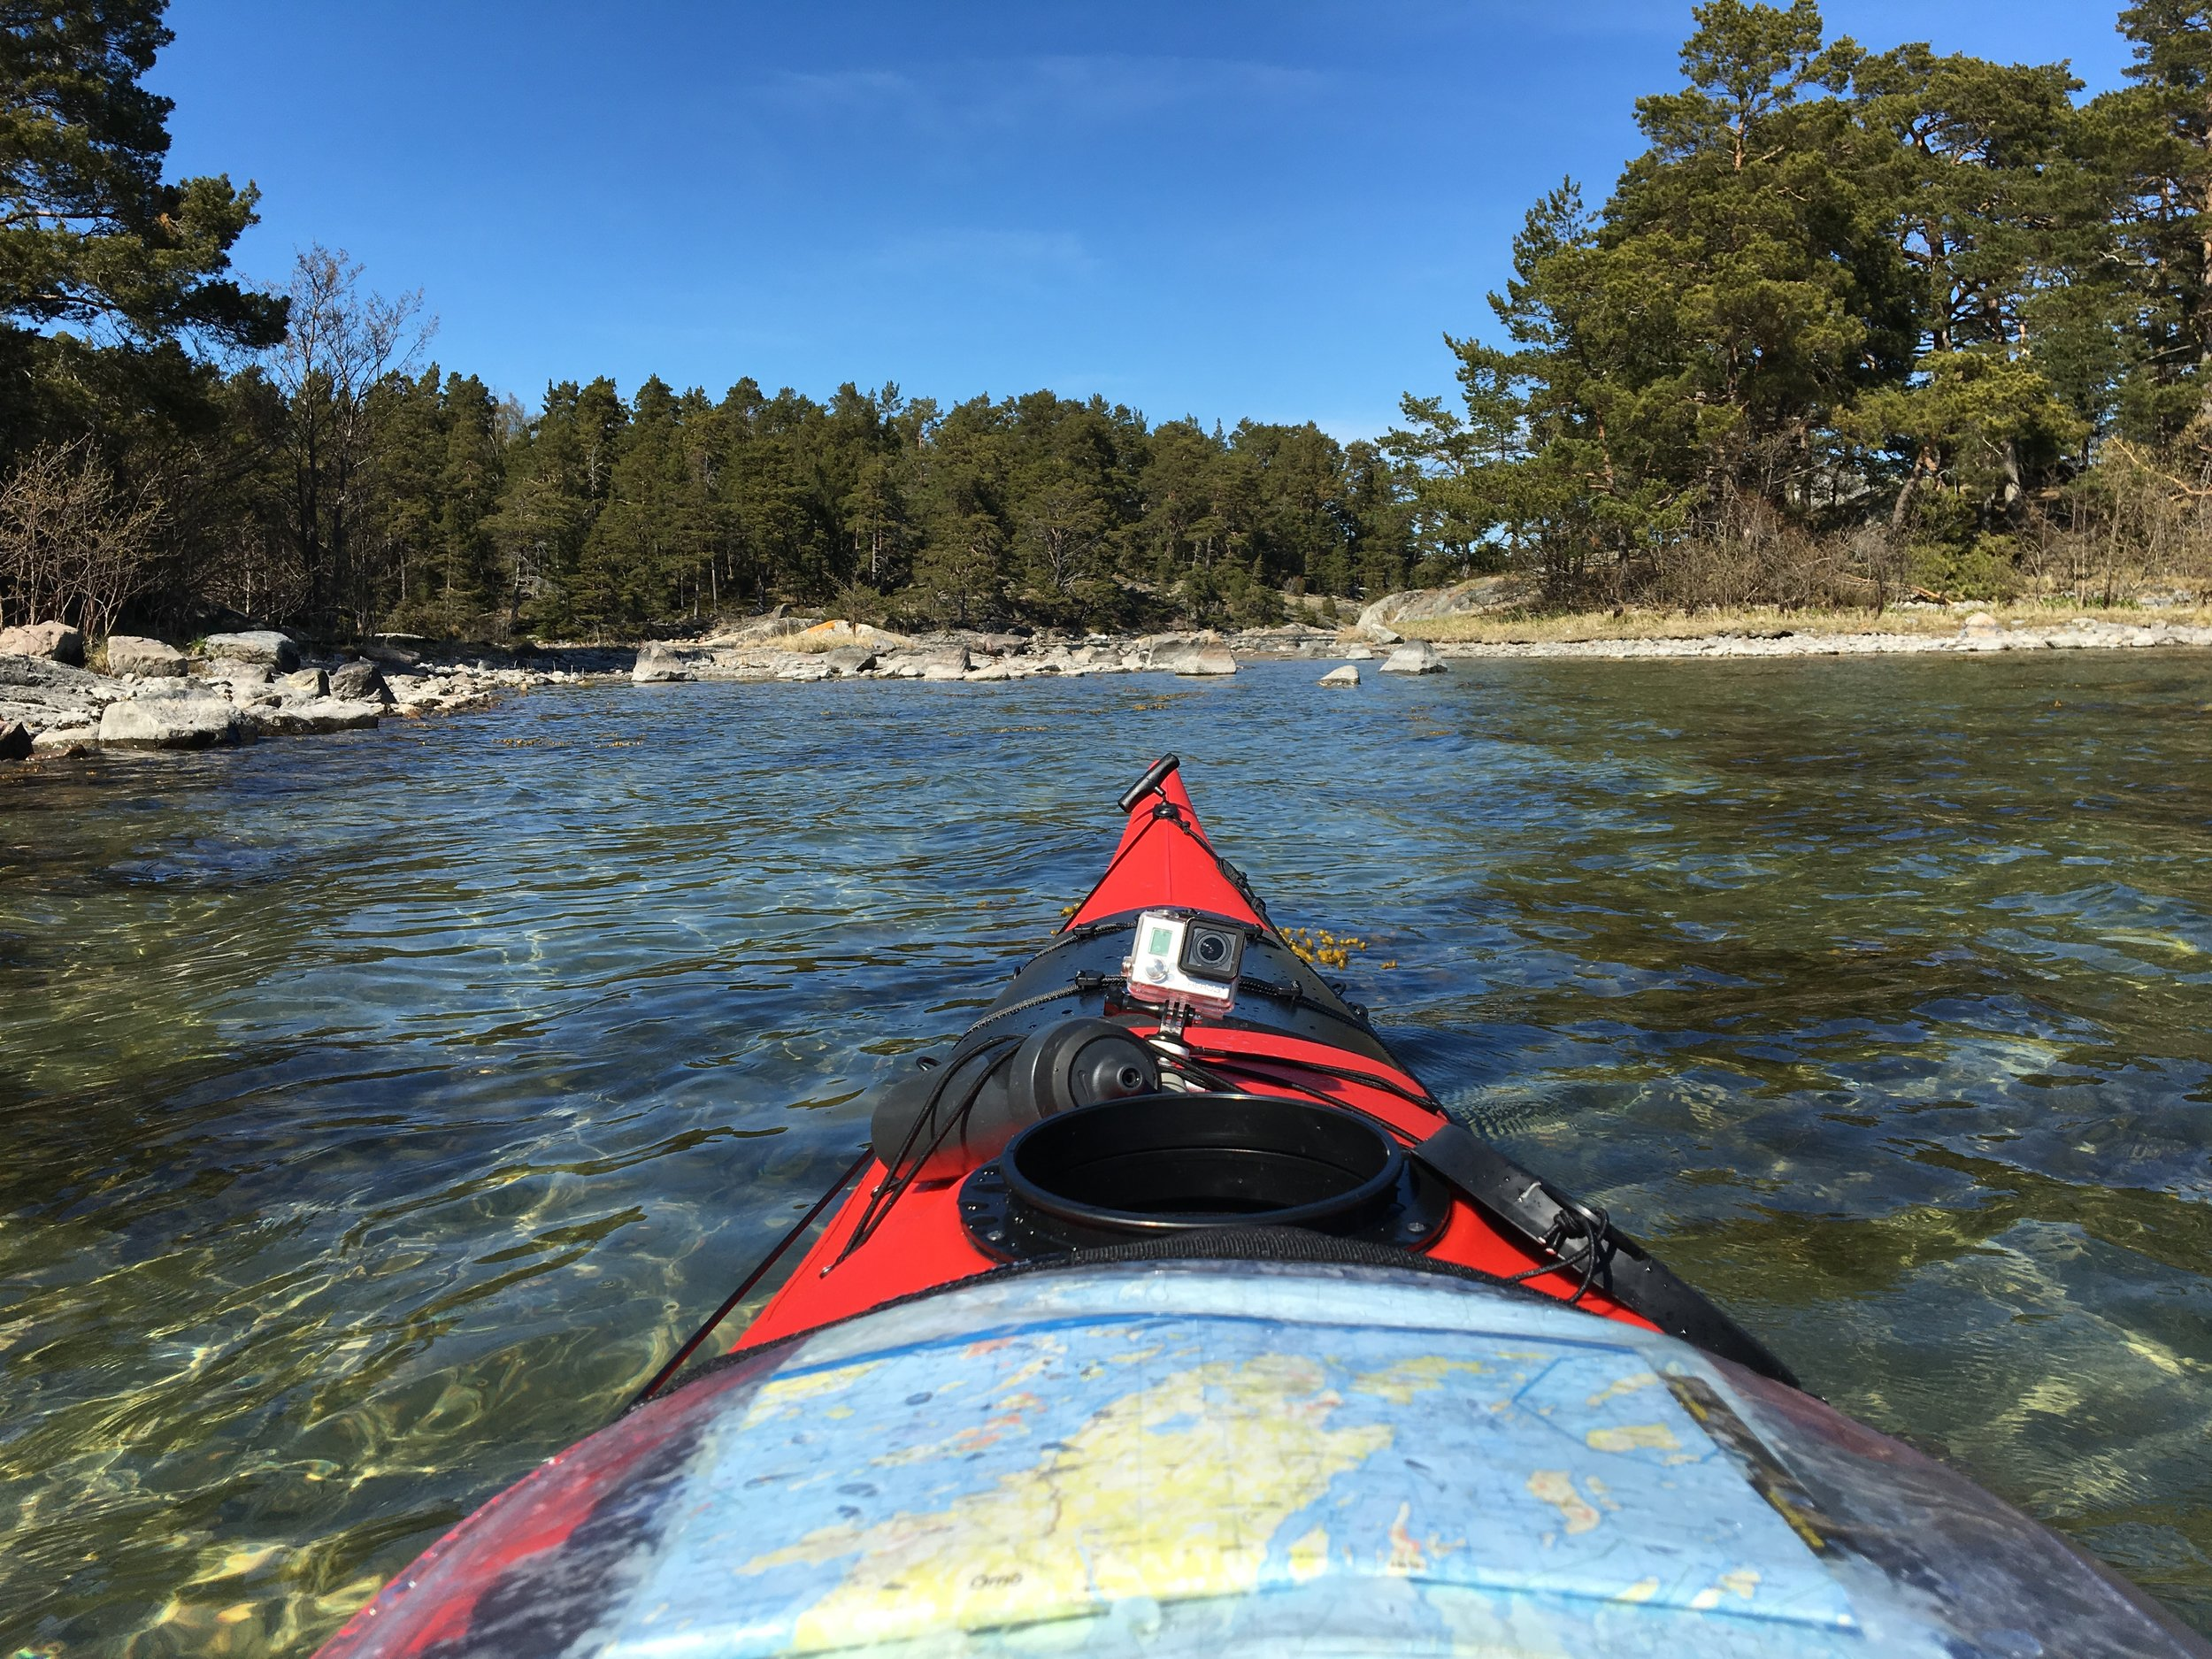 Stockholm Archipelago Kayaking Guided Tours 3 days 1